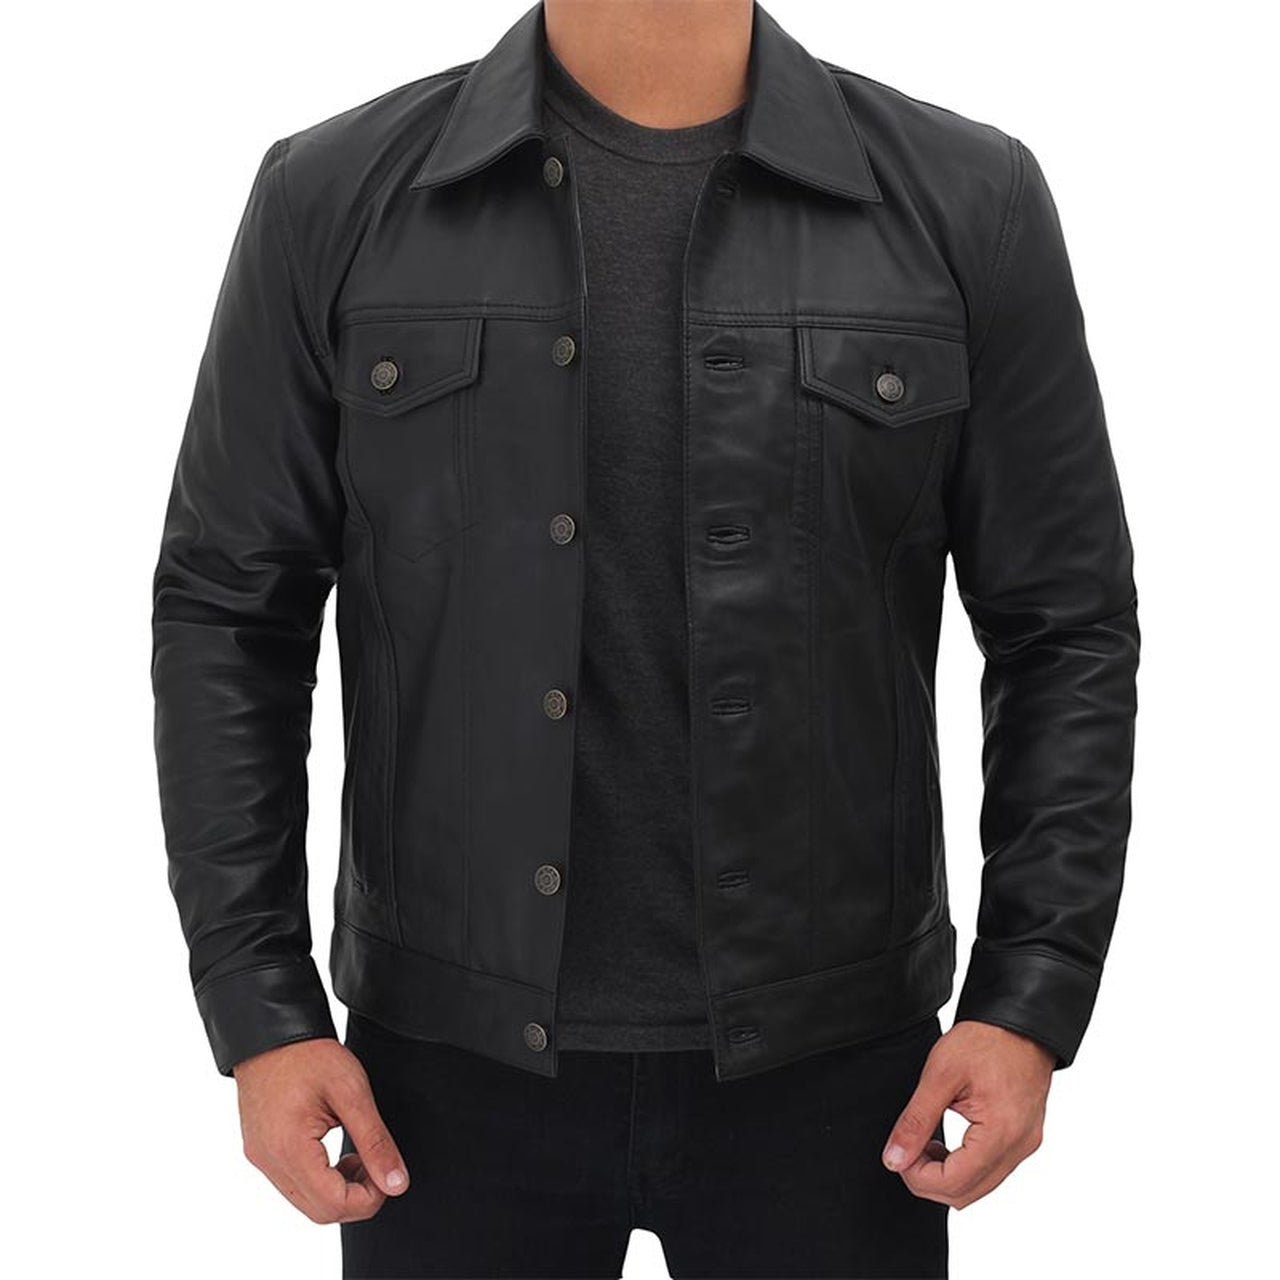 Black Genuine Leather Trucker Jacket - Leather Jacket